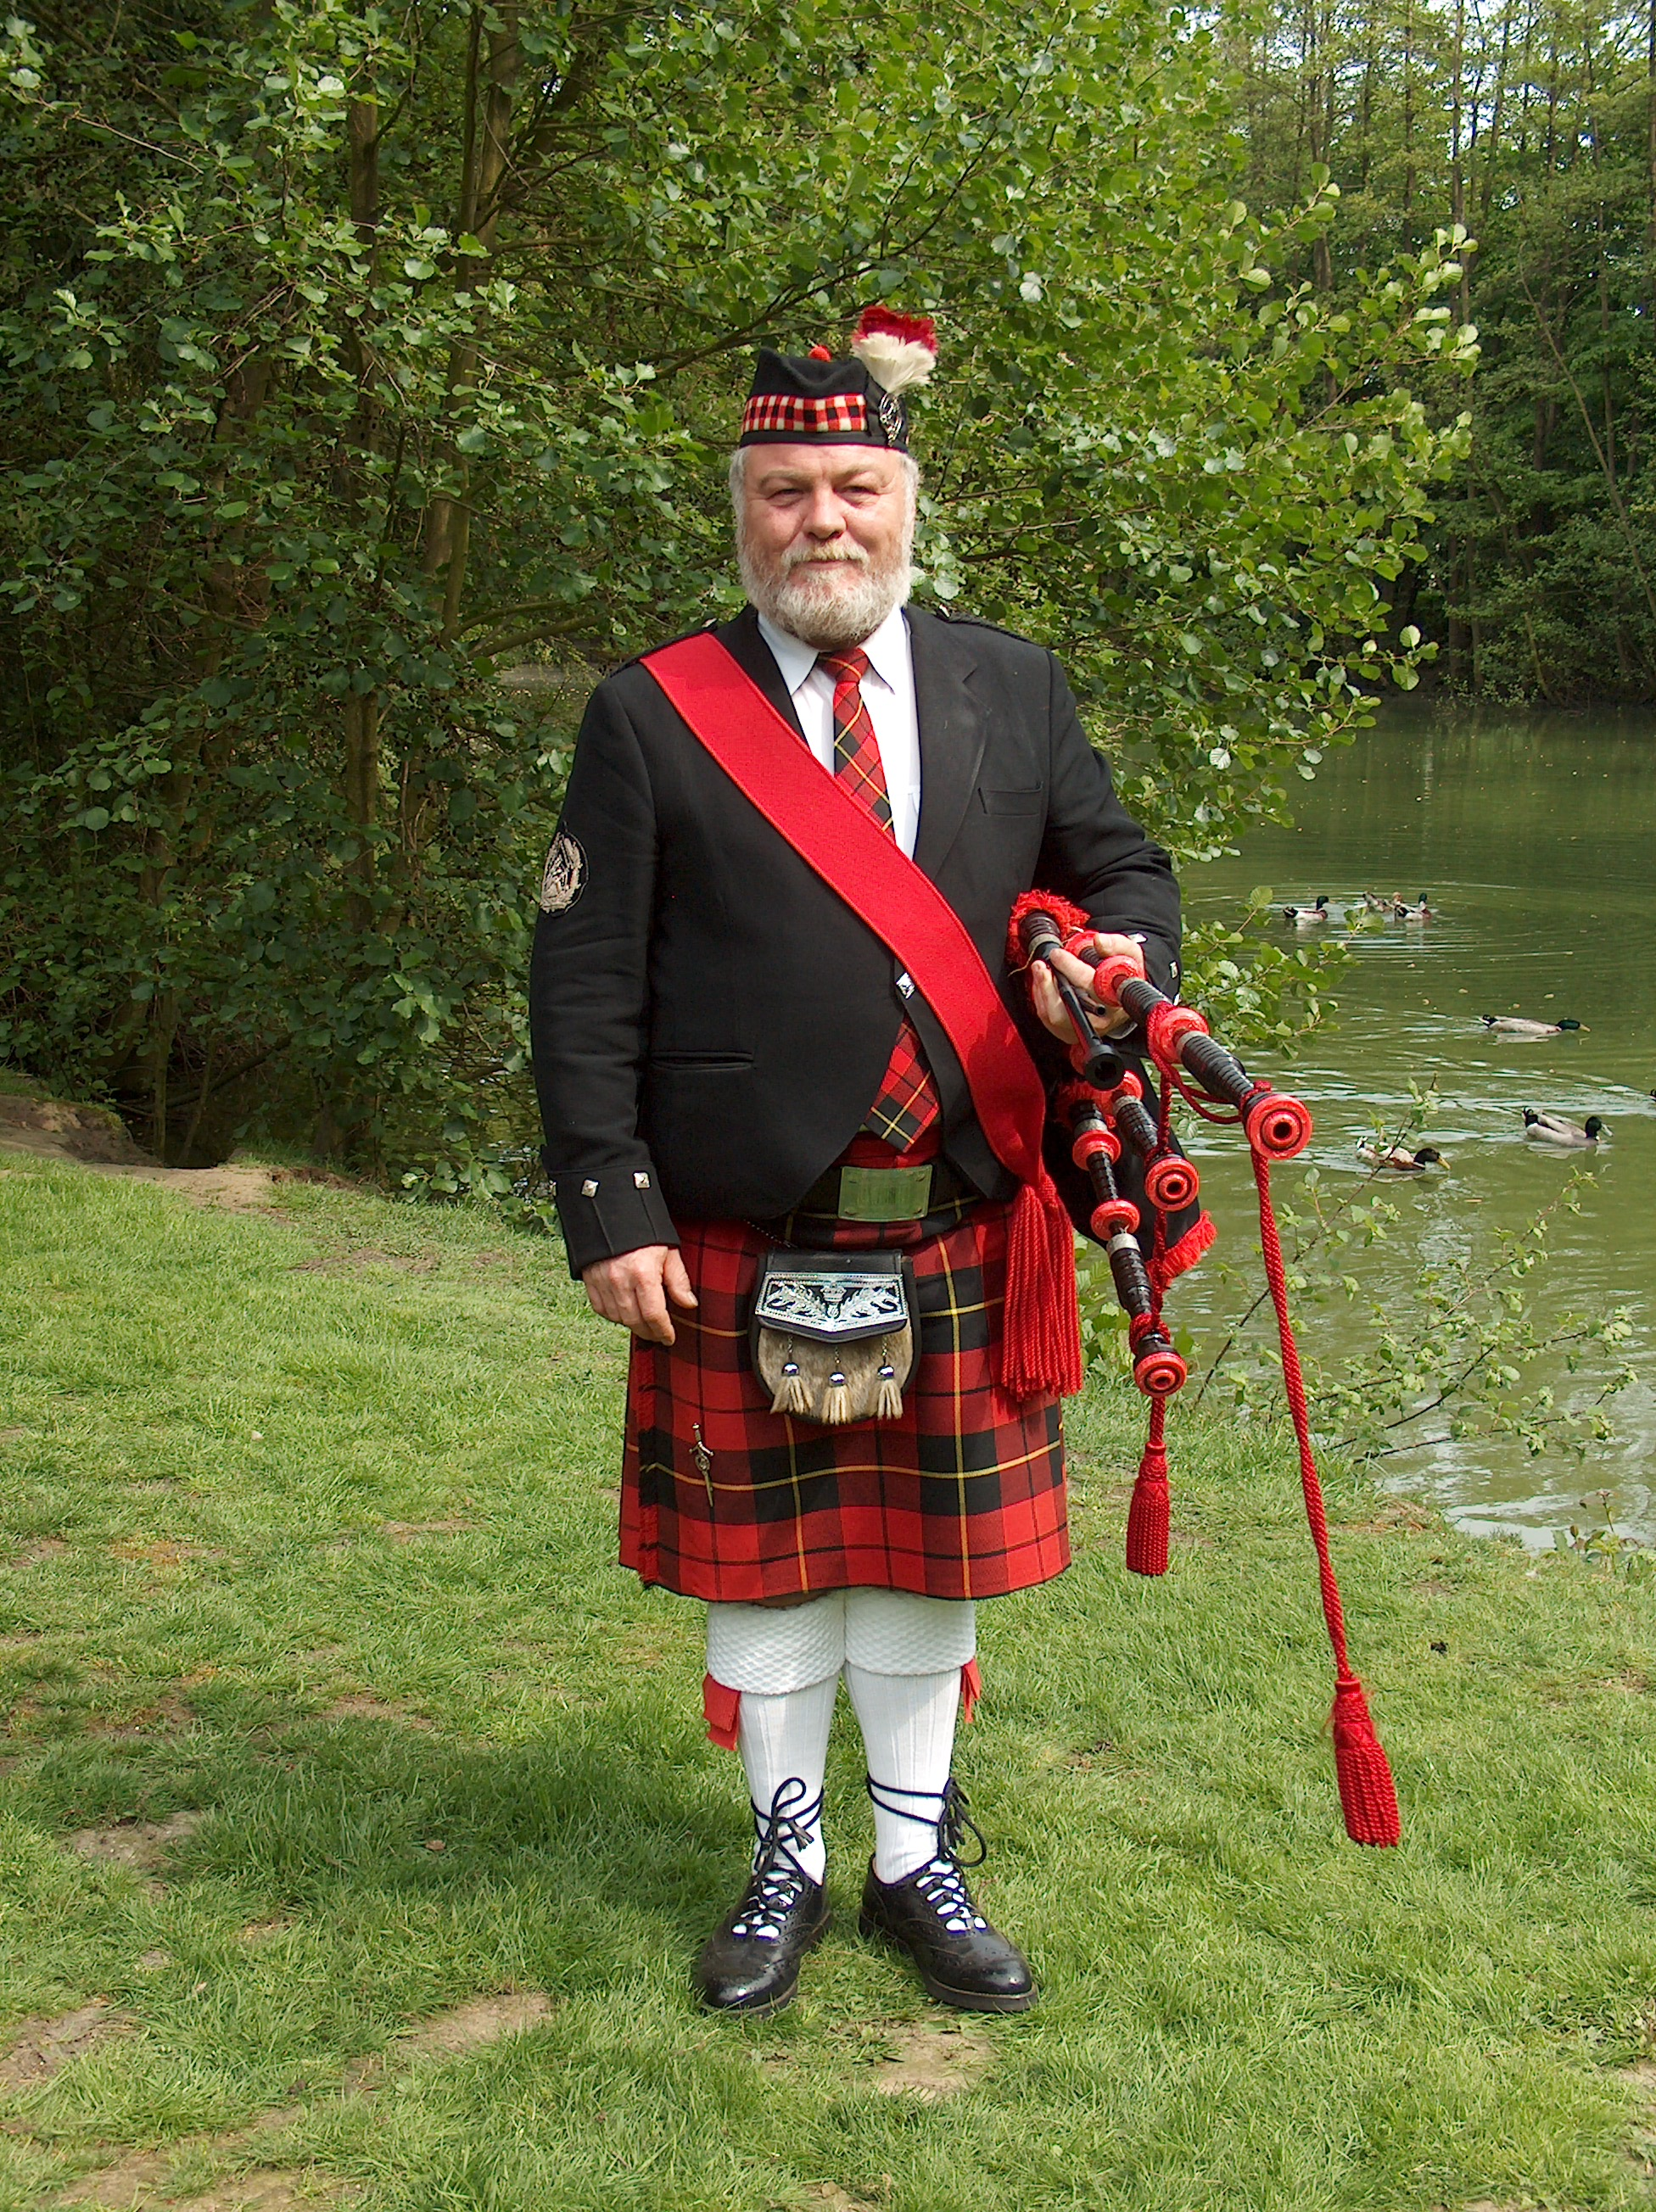 Pipe Major Johnny Noels